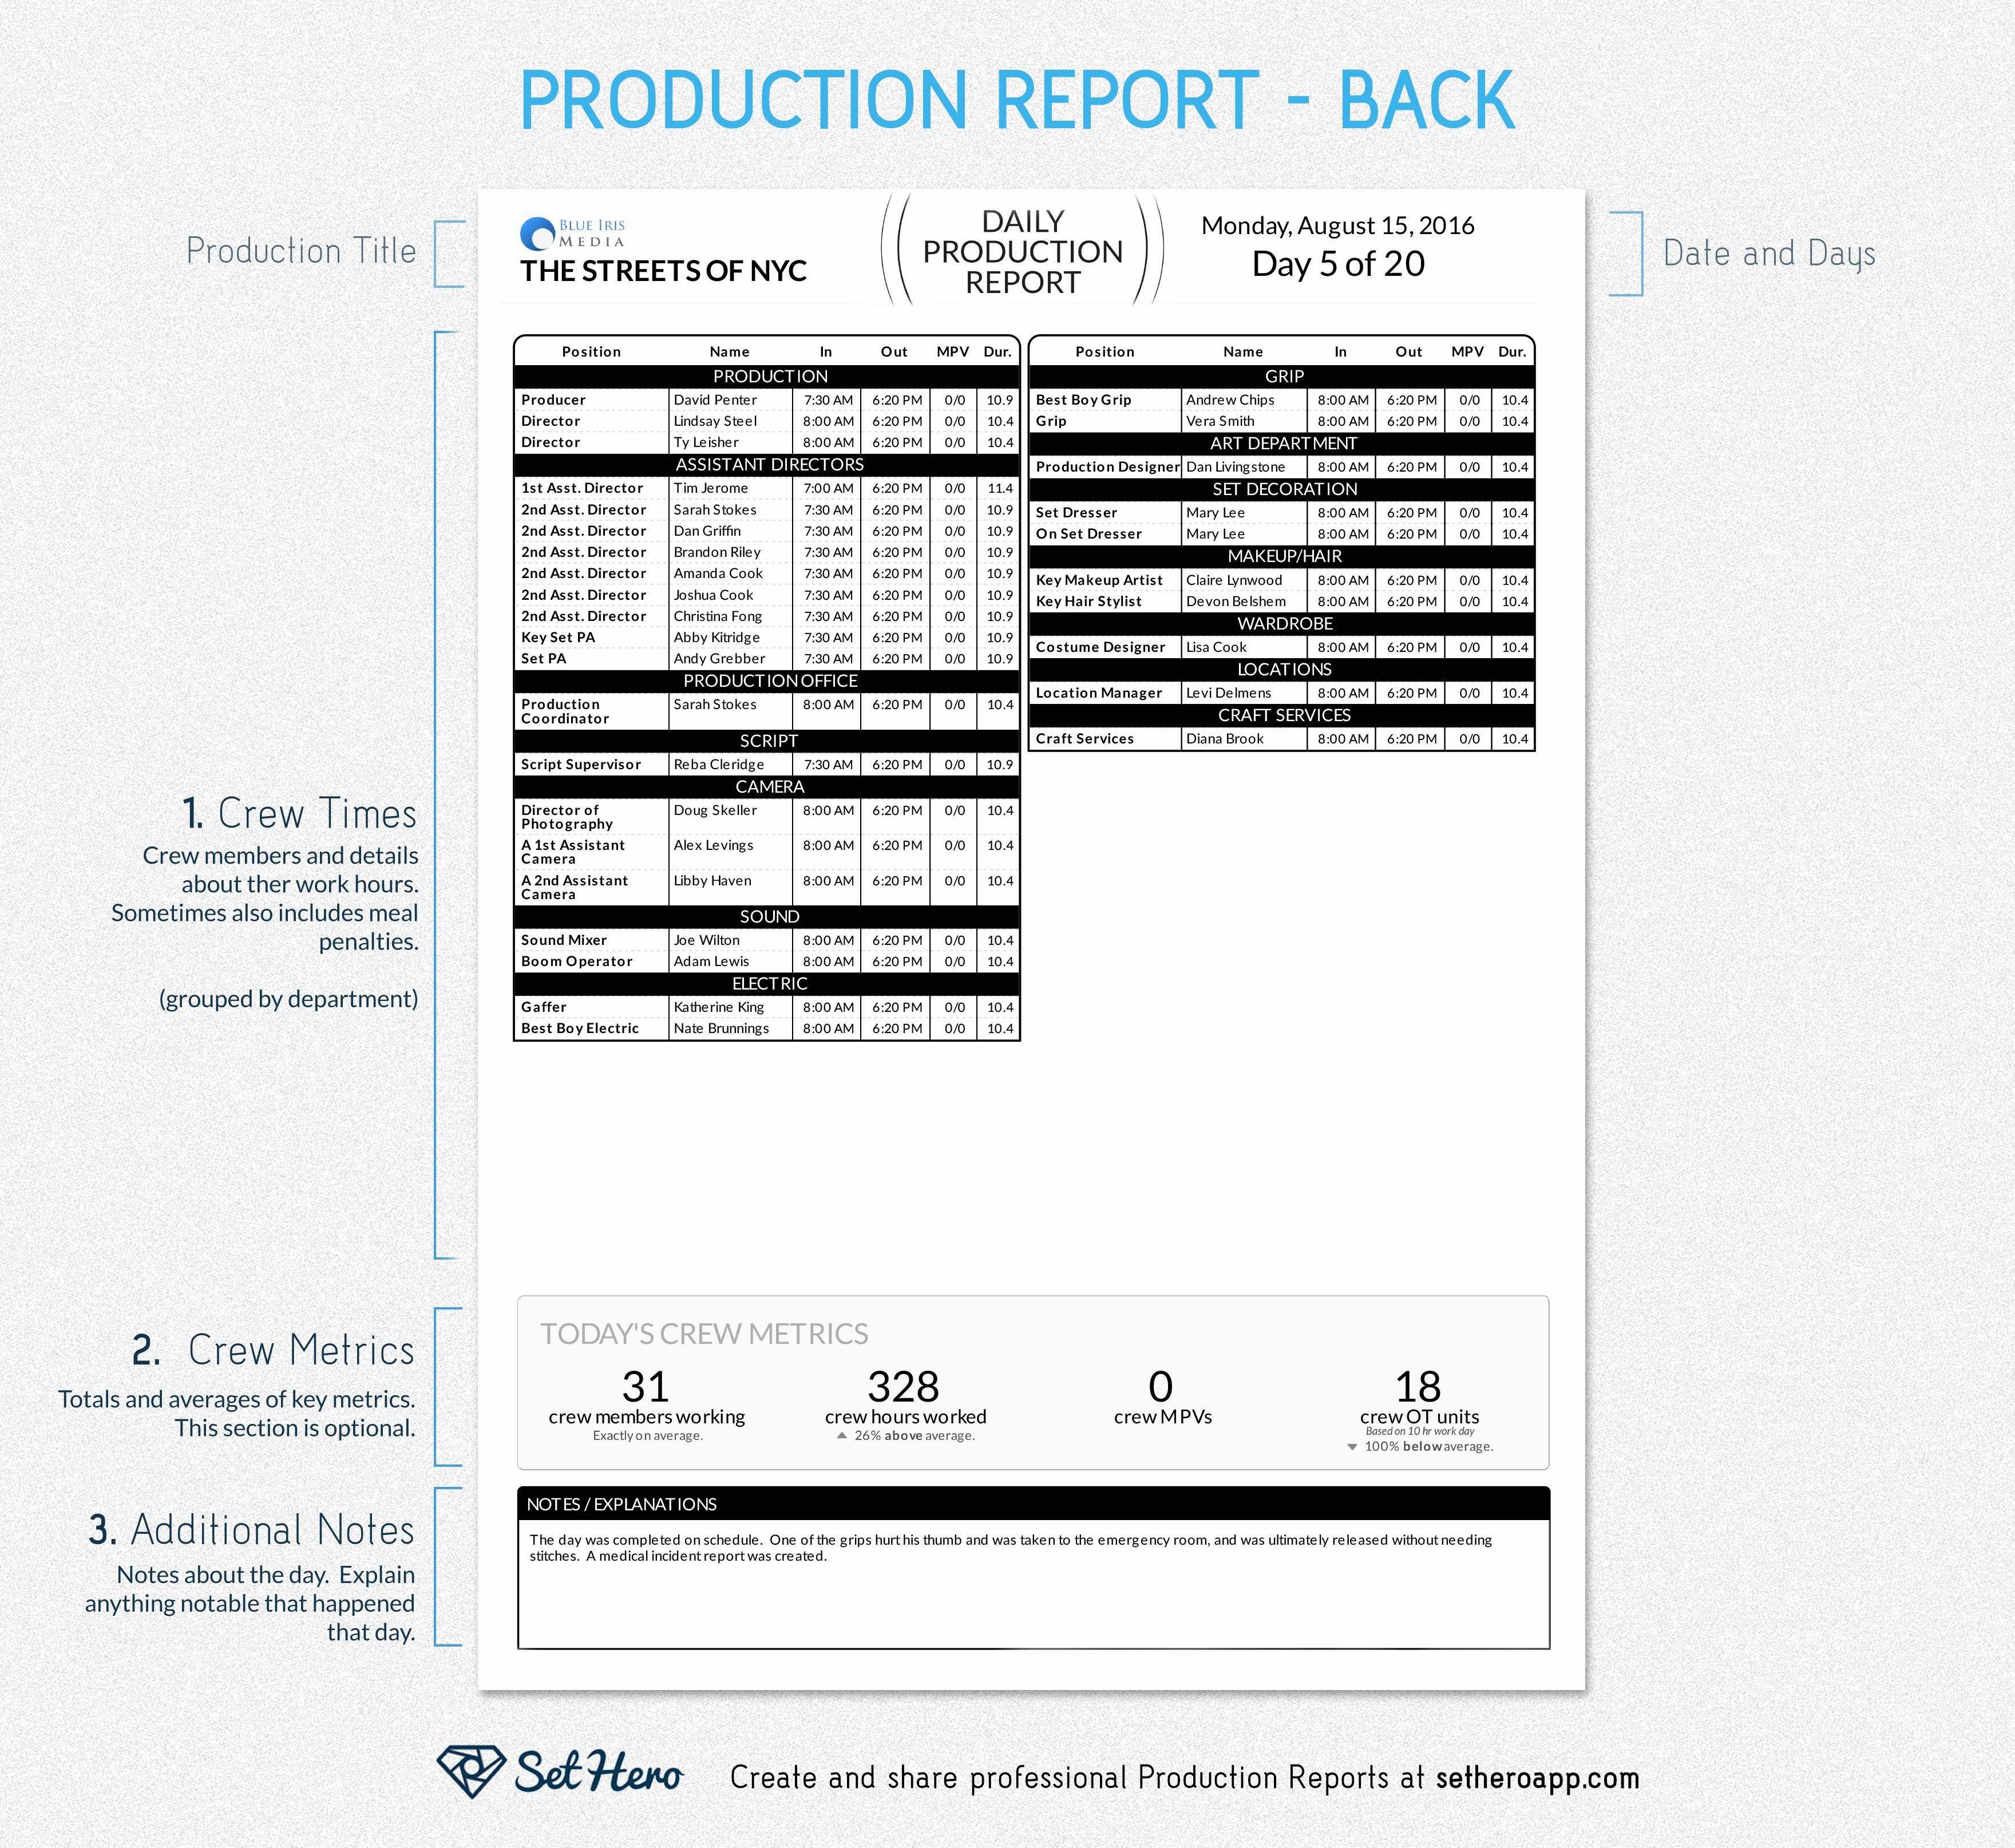 Daily Production Report Template Excel Elegant Daily Production Reports Explained Free Template